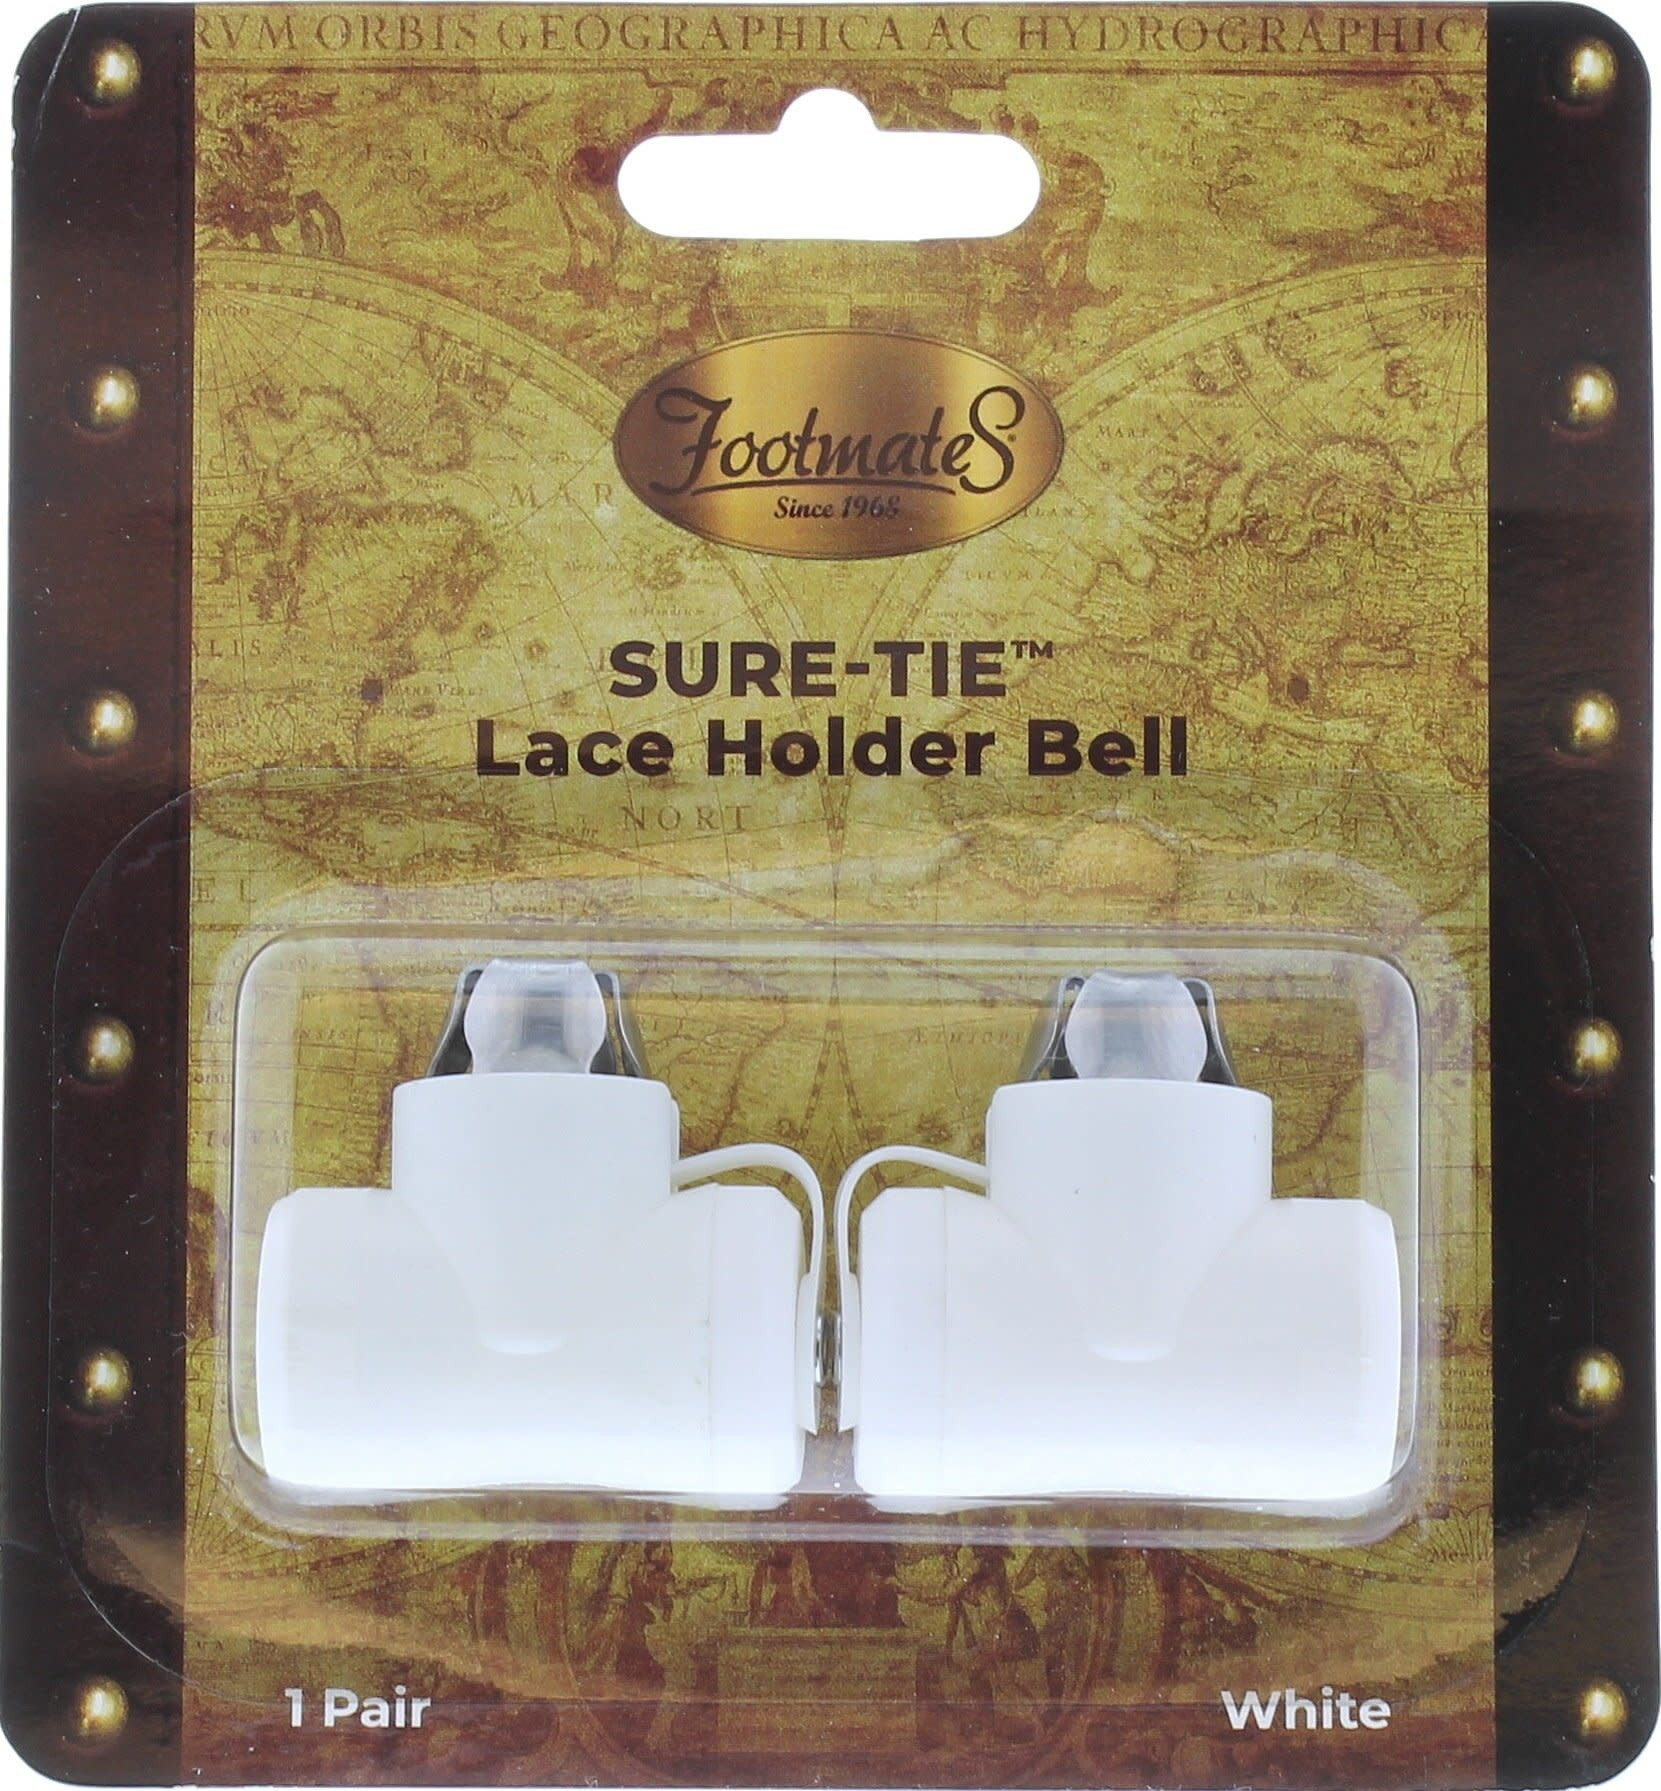 Footmates Sure-Tie Lace Holder Bell